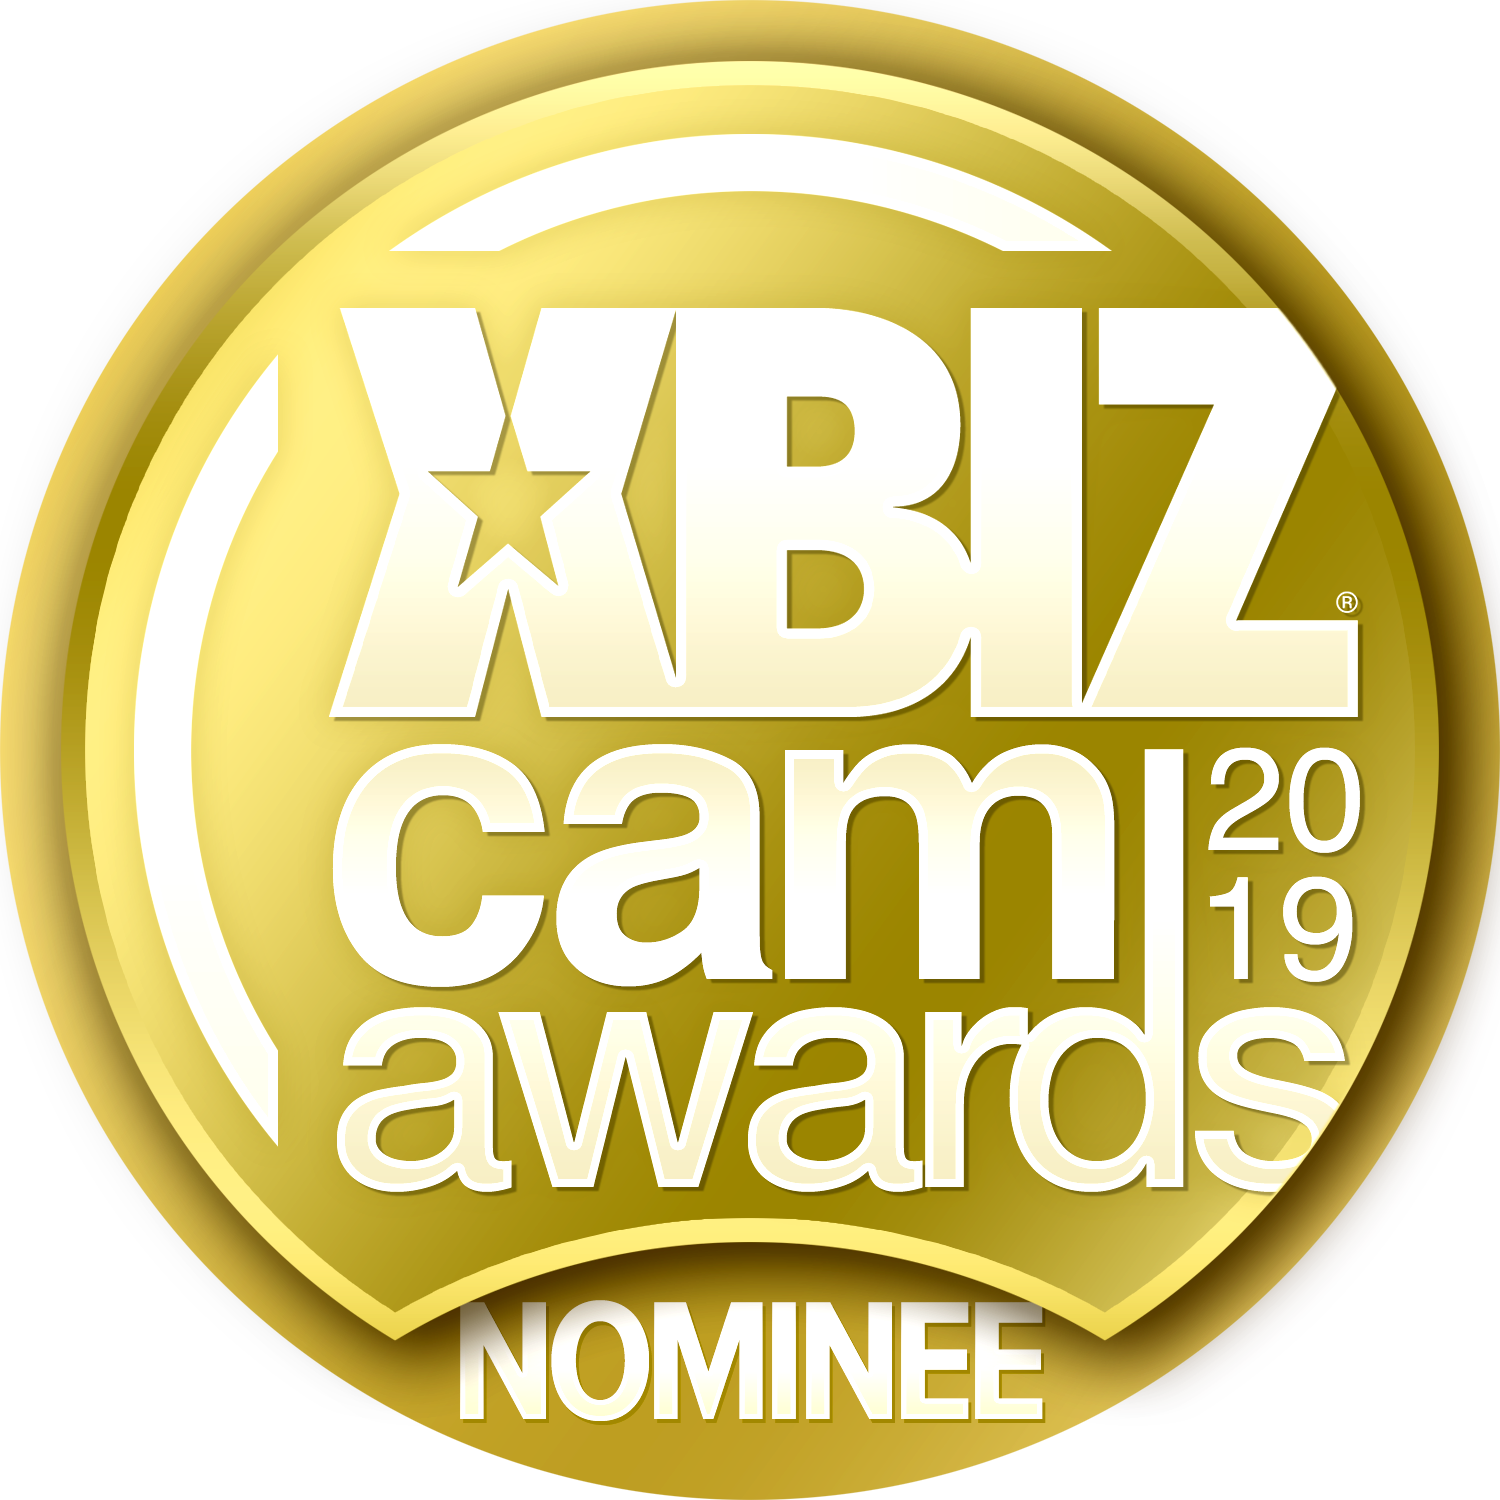 Nominated For Best Fetish Cam Model! - The fans have spoken! I am a nominee for the 2019 Xbiz Cam Awards! Make sure to vote for Me every day HEREWant access to all of the even coverage? Subscribe to My Onlyfans page for behinds the scenes content from the con, shoots, on the beach, the award show and MORE!